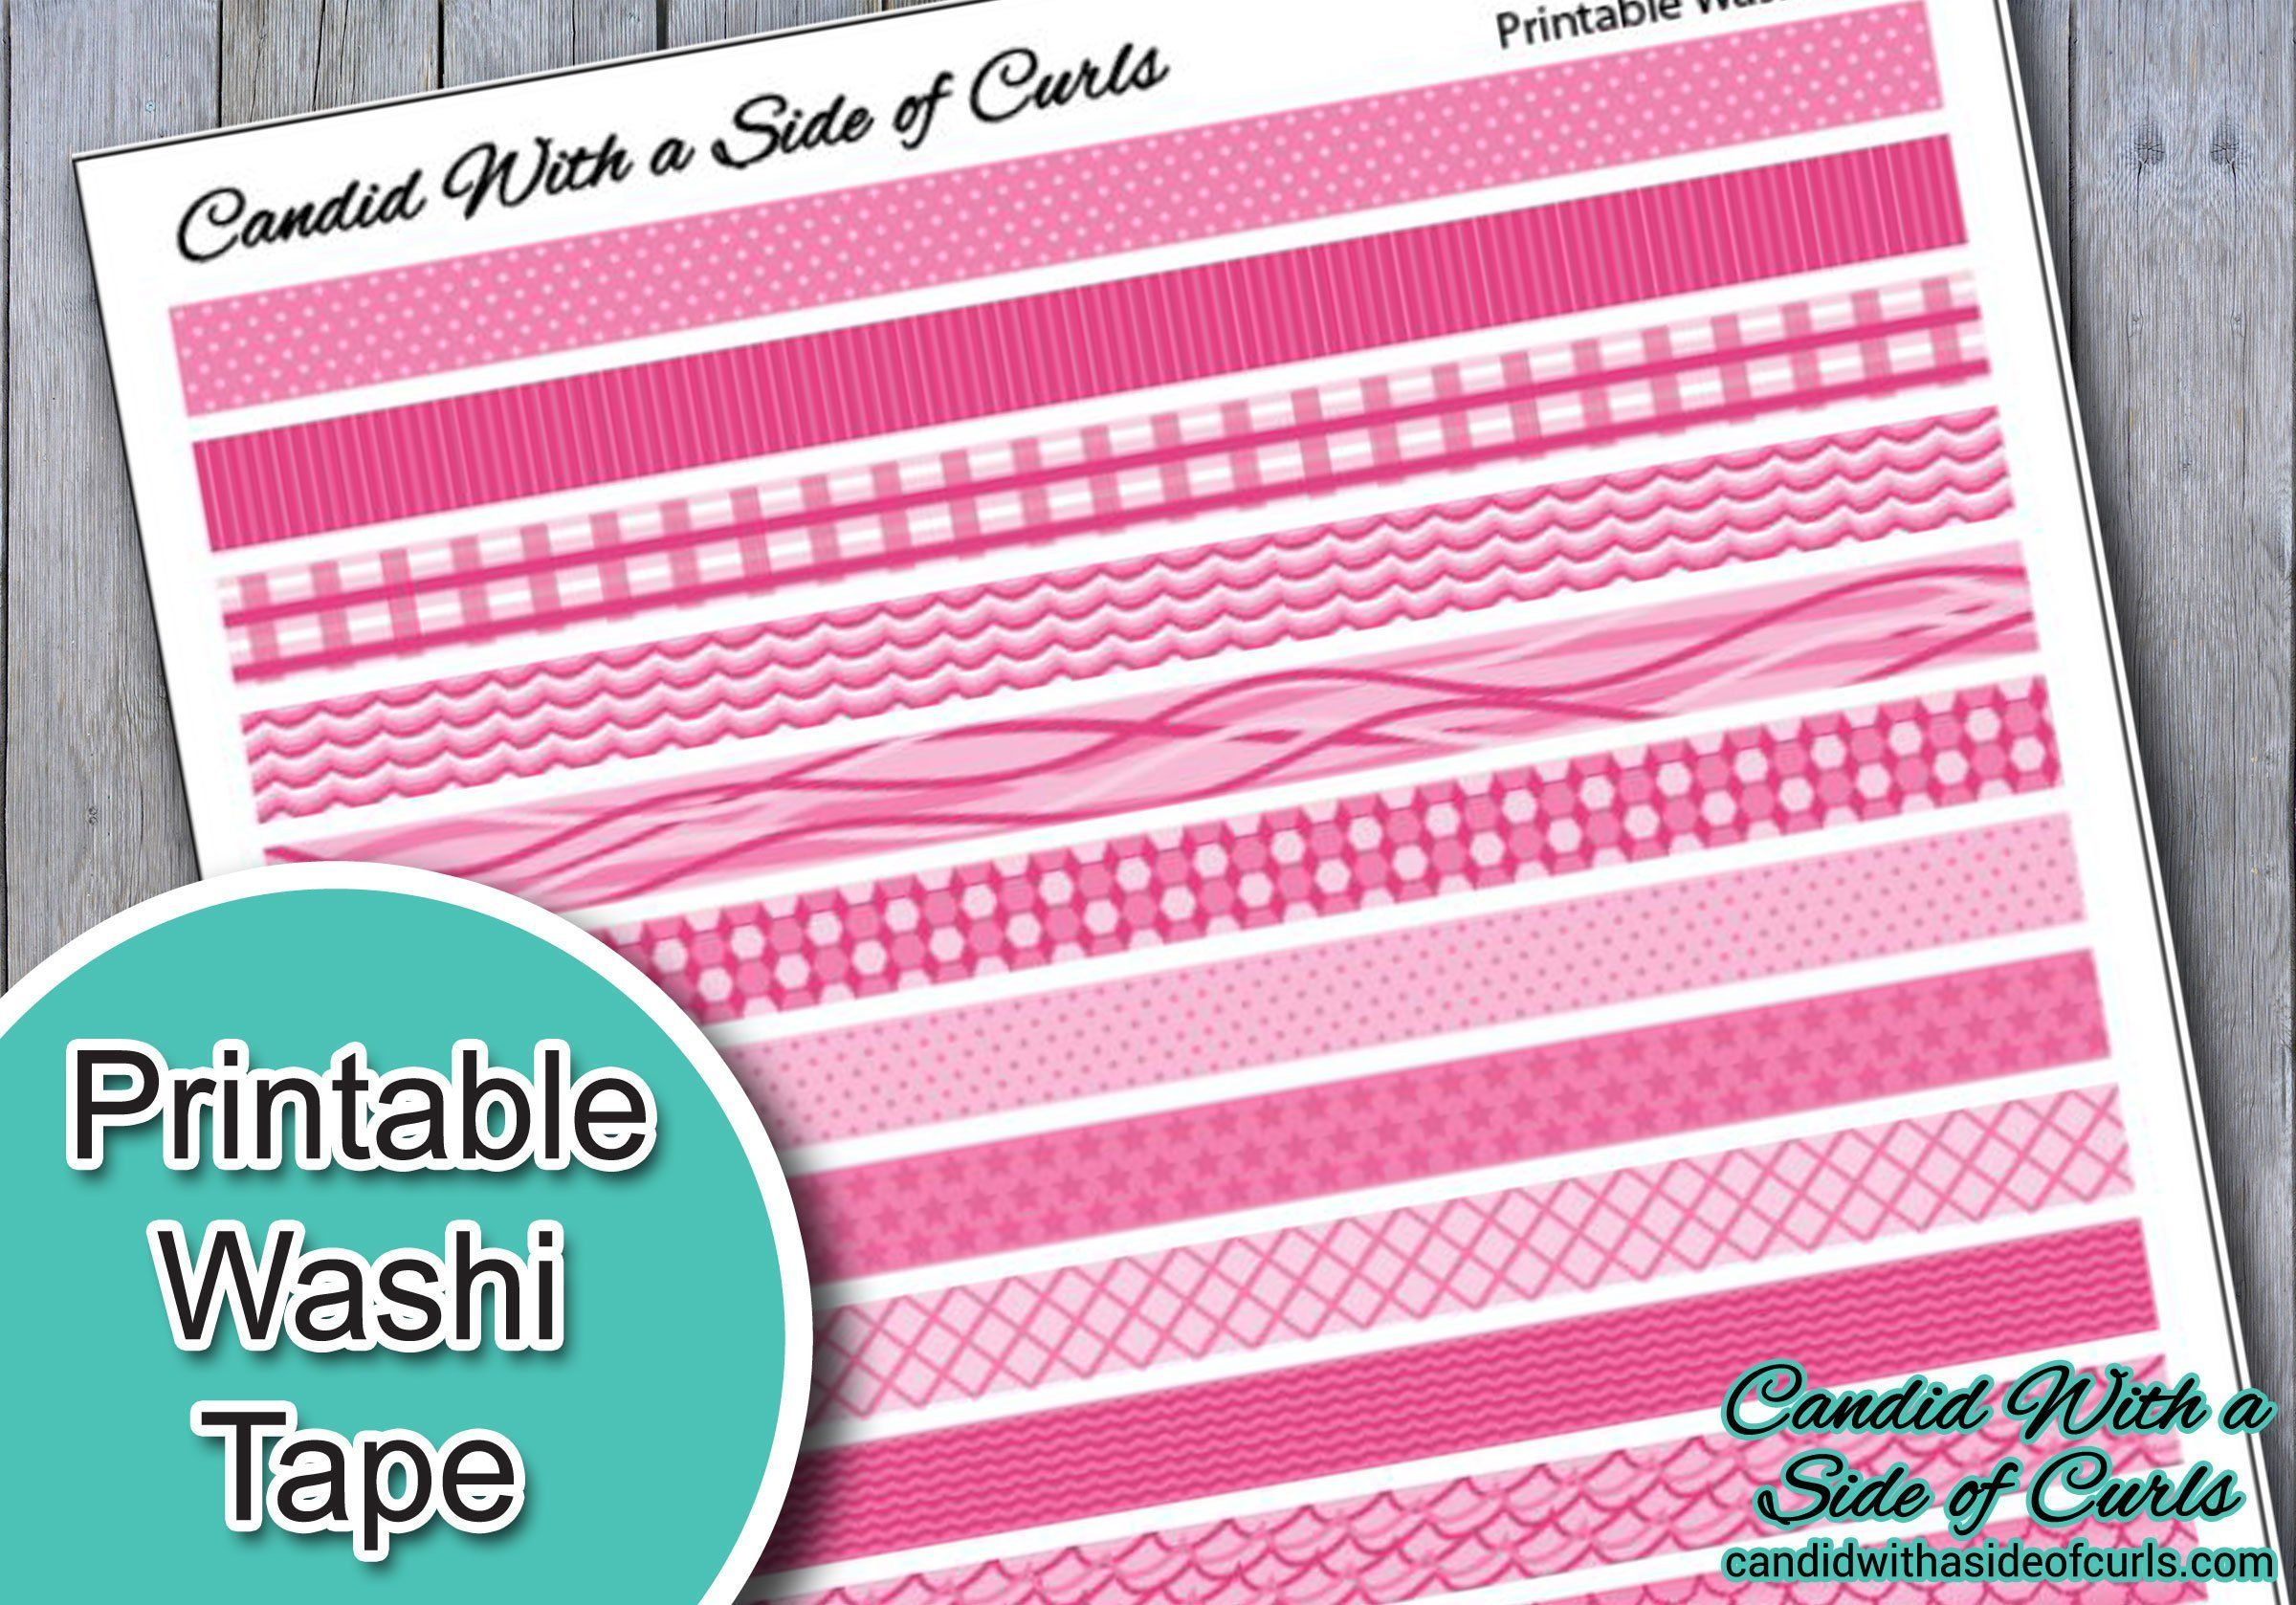 Pink Printable Washi Tape By Candidwithcurls On Etsy